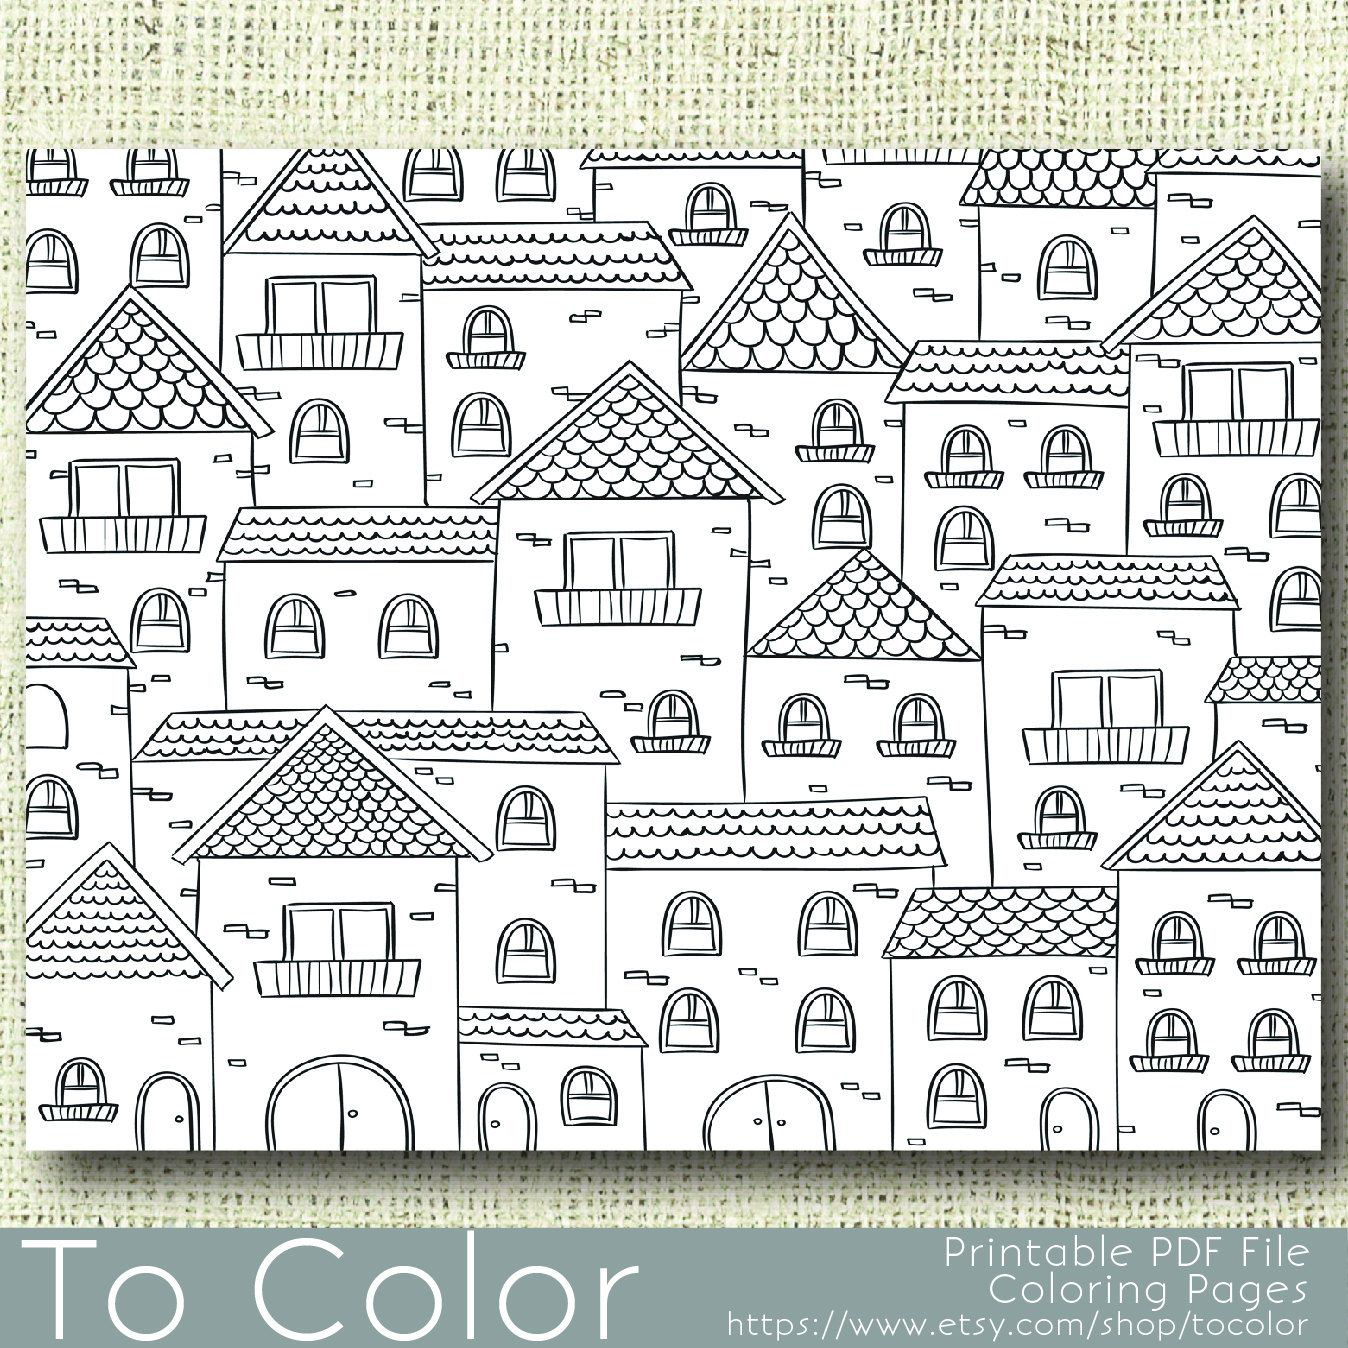 Printable Houses Coloring Page for Adults, PDF / JPG